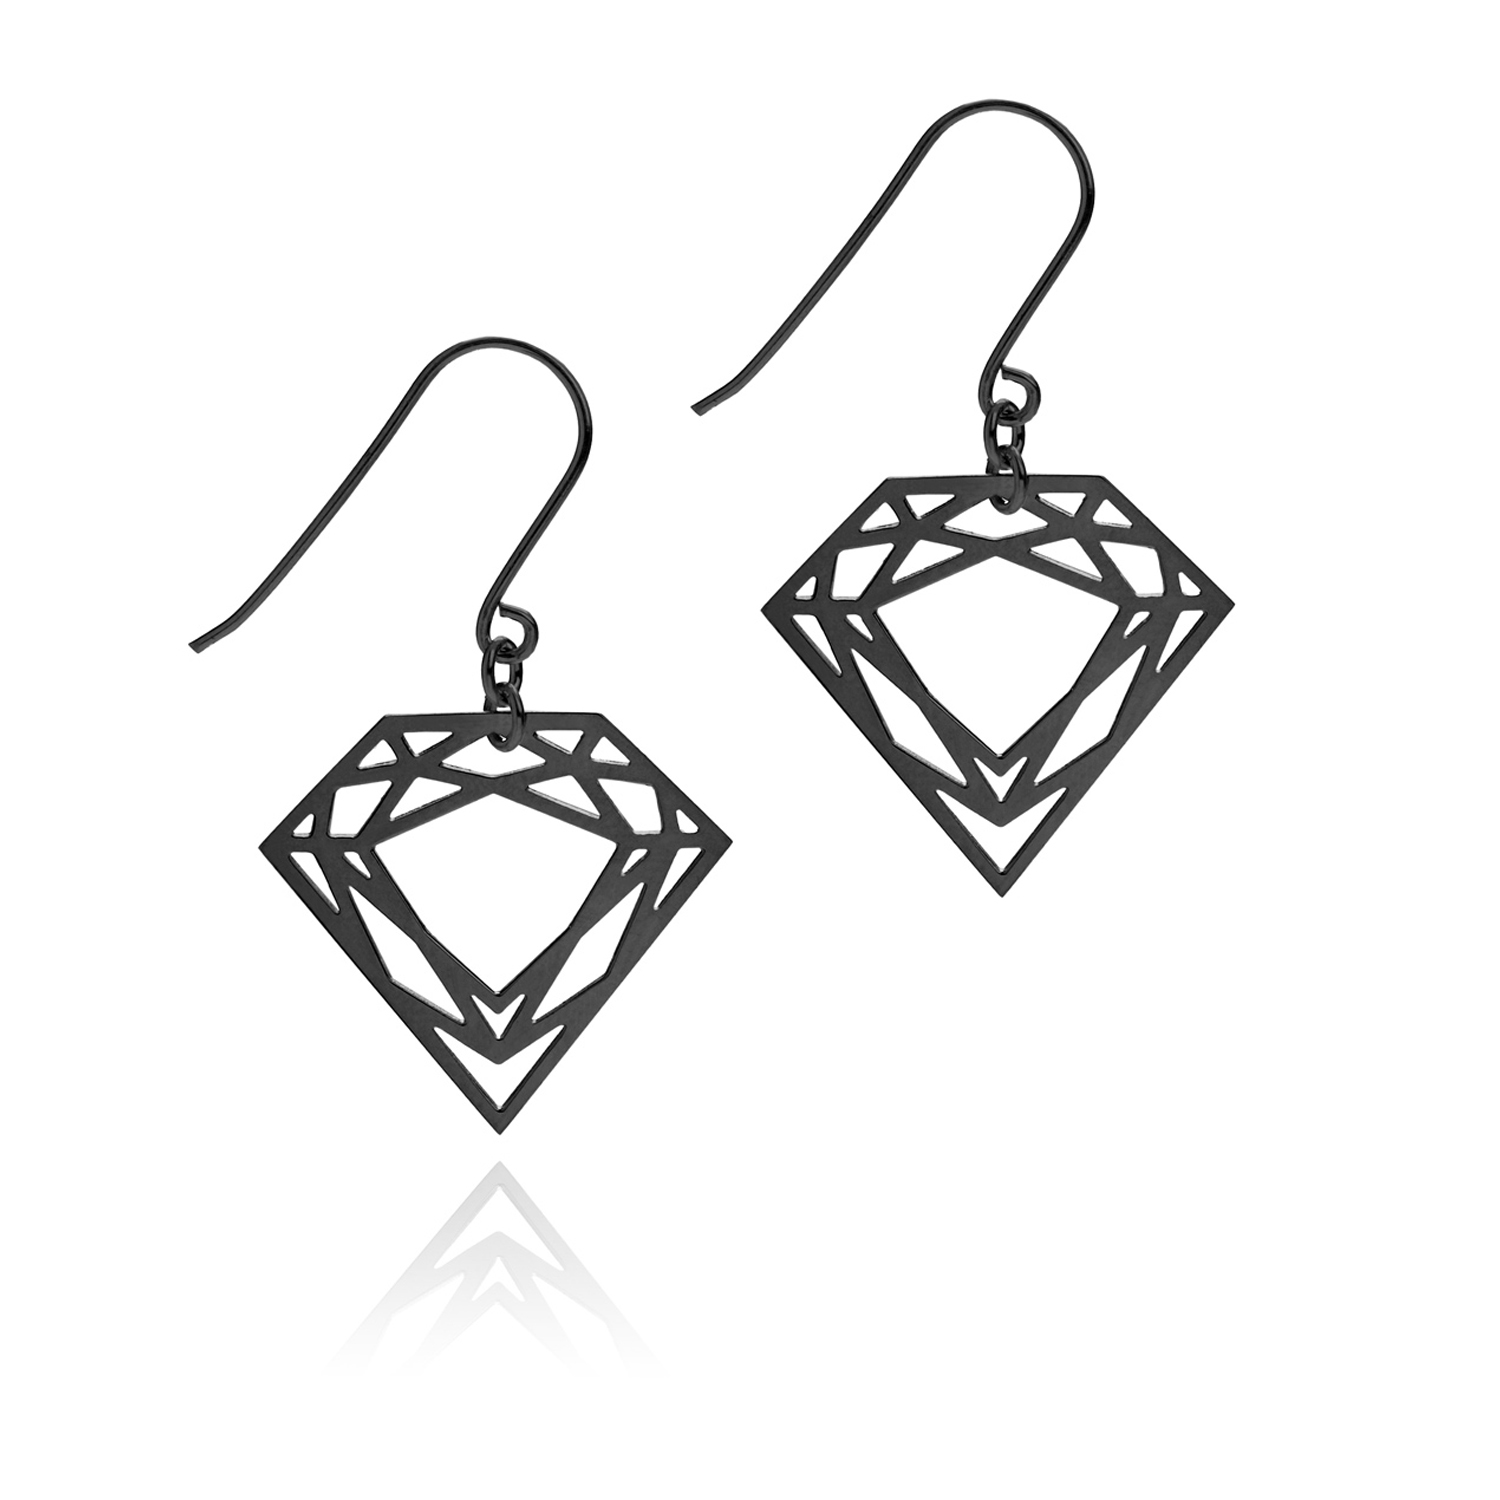 jewellery clipart ear ring